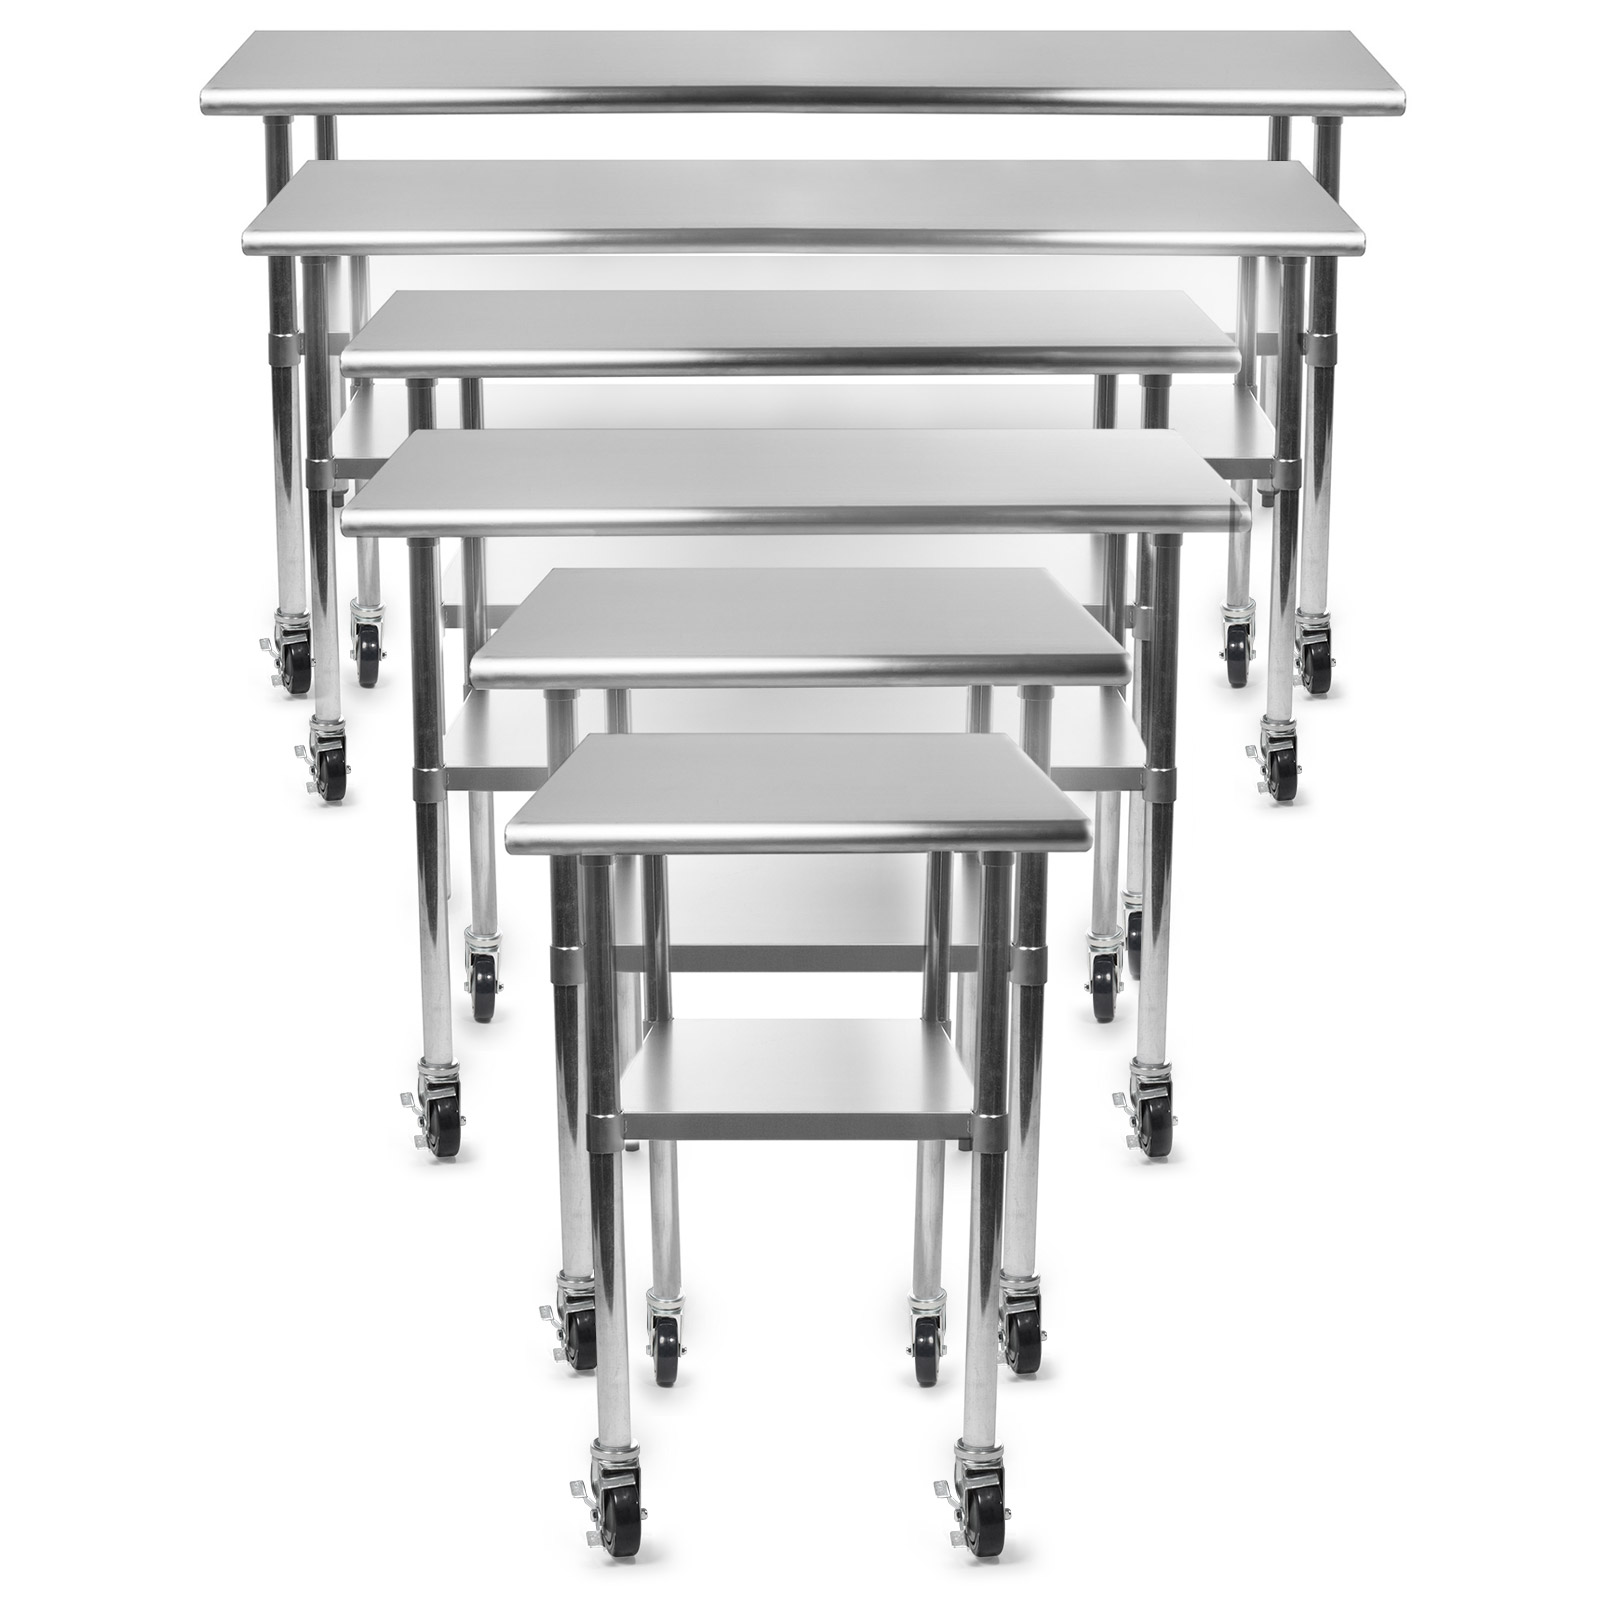 "Gridmann NSF Stainless Steel Commercial Kitchen Prep & Work Table w/ 4 Casters - Multiple Sizes Available - 30"" 36"" 48"" 72"""